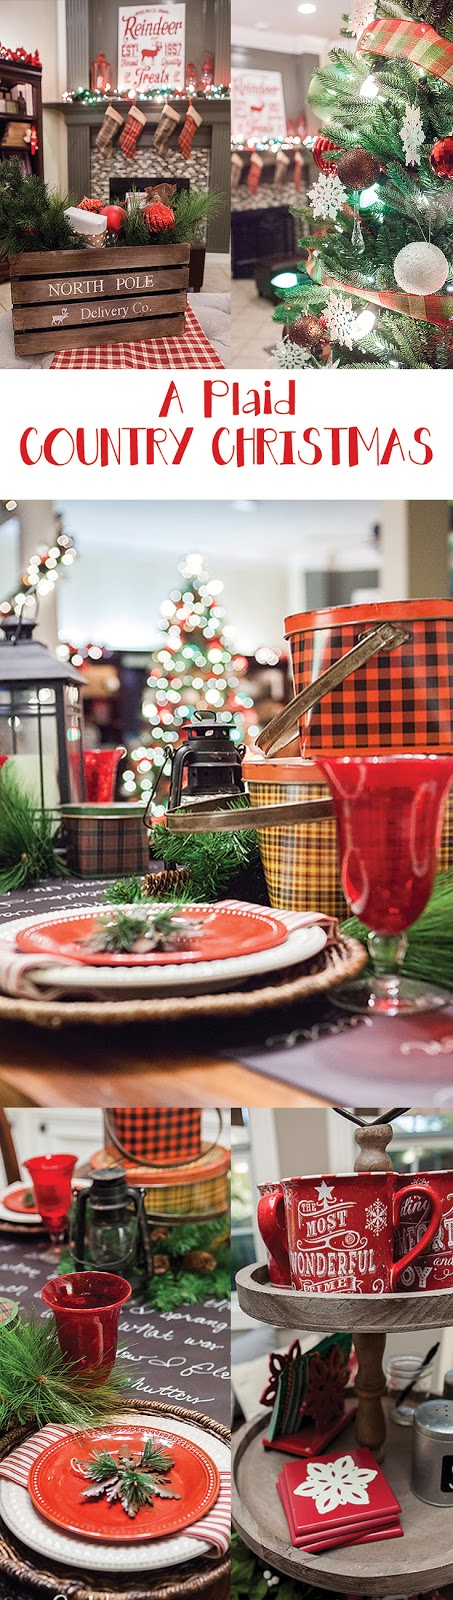 A truly stunning Christmas Home Tour as part of the Christmas in the Country Blog Tour. This Plaid Inspired Country Christmas will knock your socks off. Features tours of the Living room, Dining Room and a Cocoa hot chocolate bar in the Breakfast room. There is so much inspiration for Christmas decorations in this one post. Be prepared to feel like you are cuddled up by the fire in a warm Northwoods comfy cottage! #country #Christmas #Plaid #Holiday decorating #Holiday ideas #Holidays #Christmas decor #Holiday decor